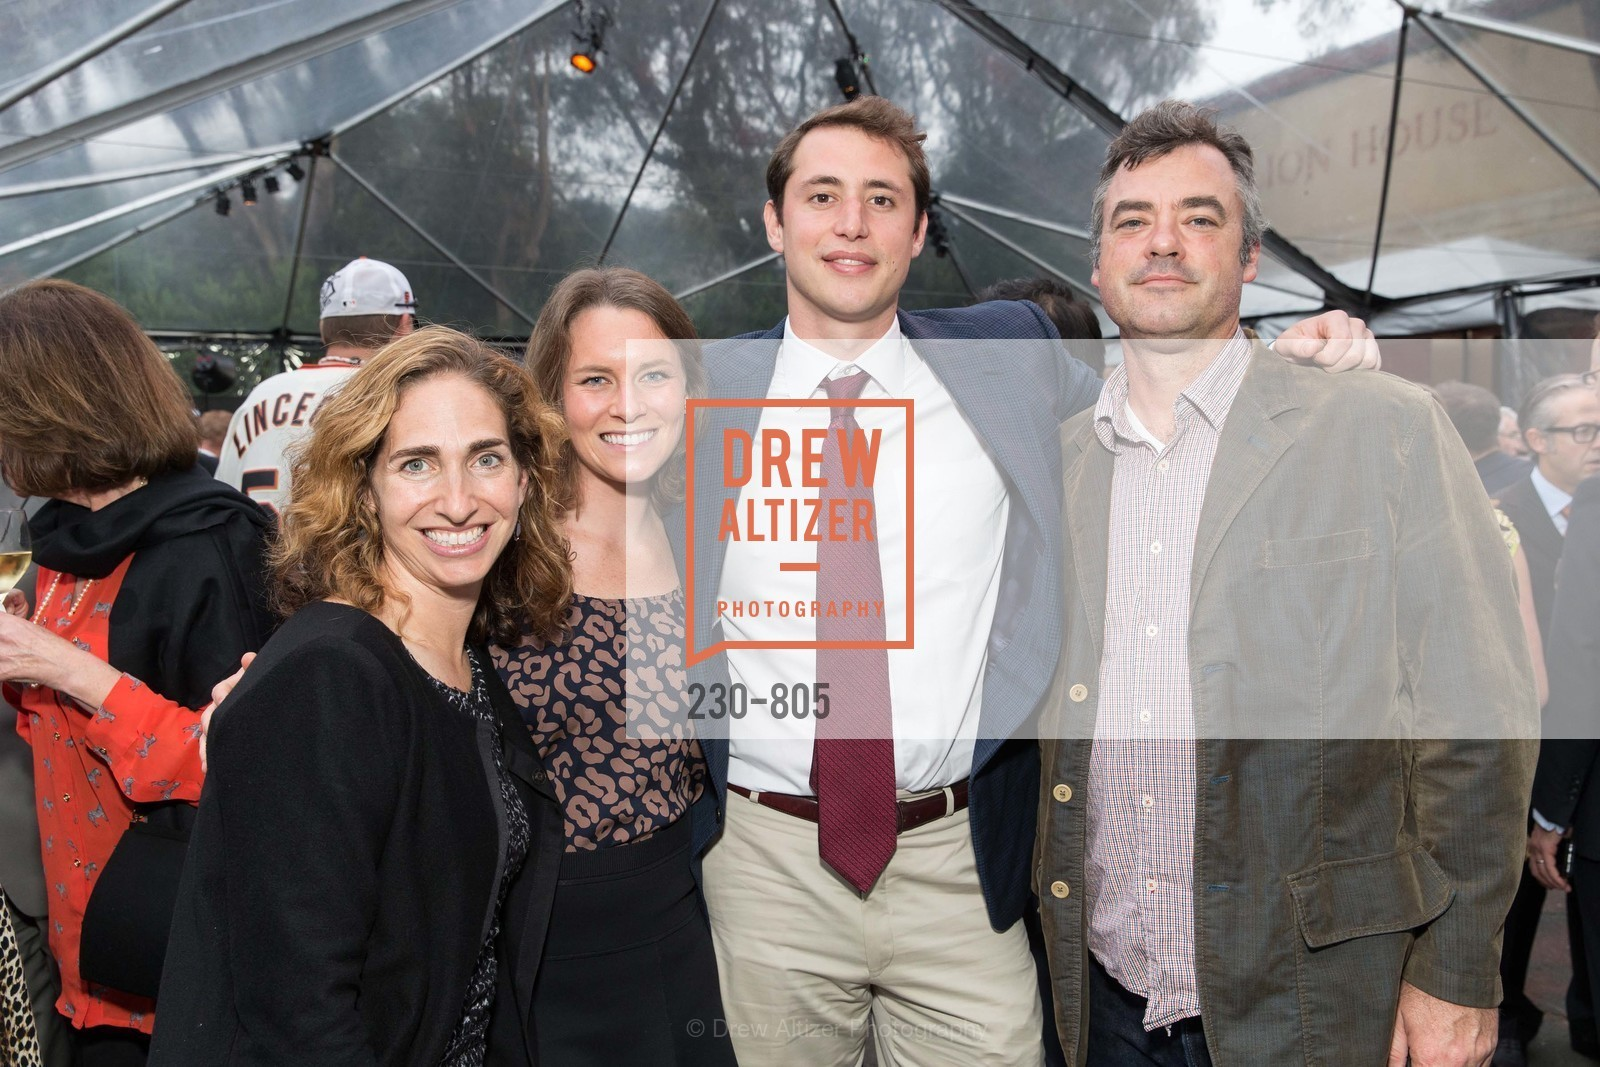 Stacey Rubin, Brittany Powell, Sam Cartmell, John Oram, ZOOFEST 2015, US, April 26th, 2015,Drew Altizer, Drew Altizer Photography, full-service event agency, private events, San Francisco photographer, photographer California